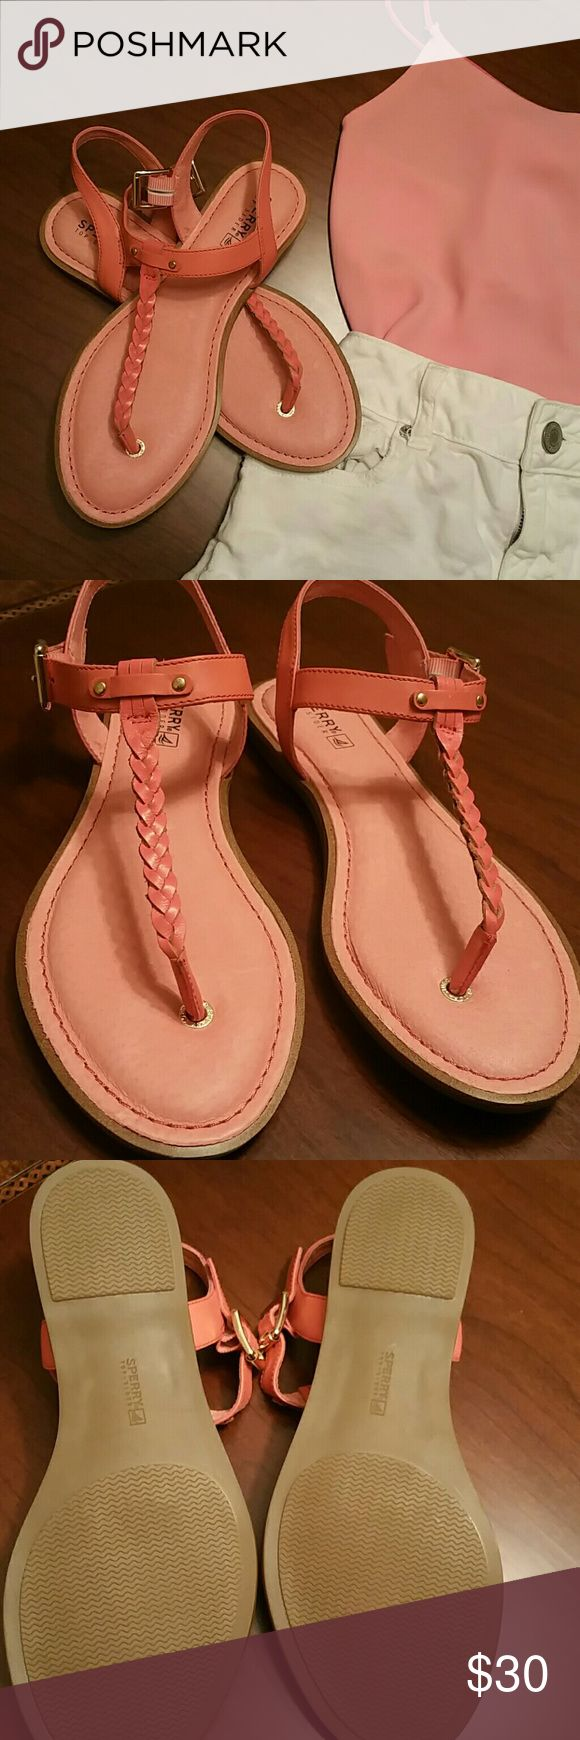 Coral Sperry sandals Coral Sperry sandals leather upper.  Never worn Sperry Shoes Sandals